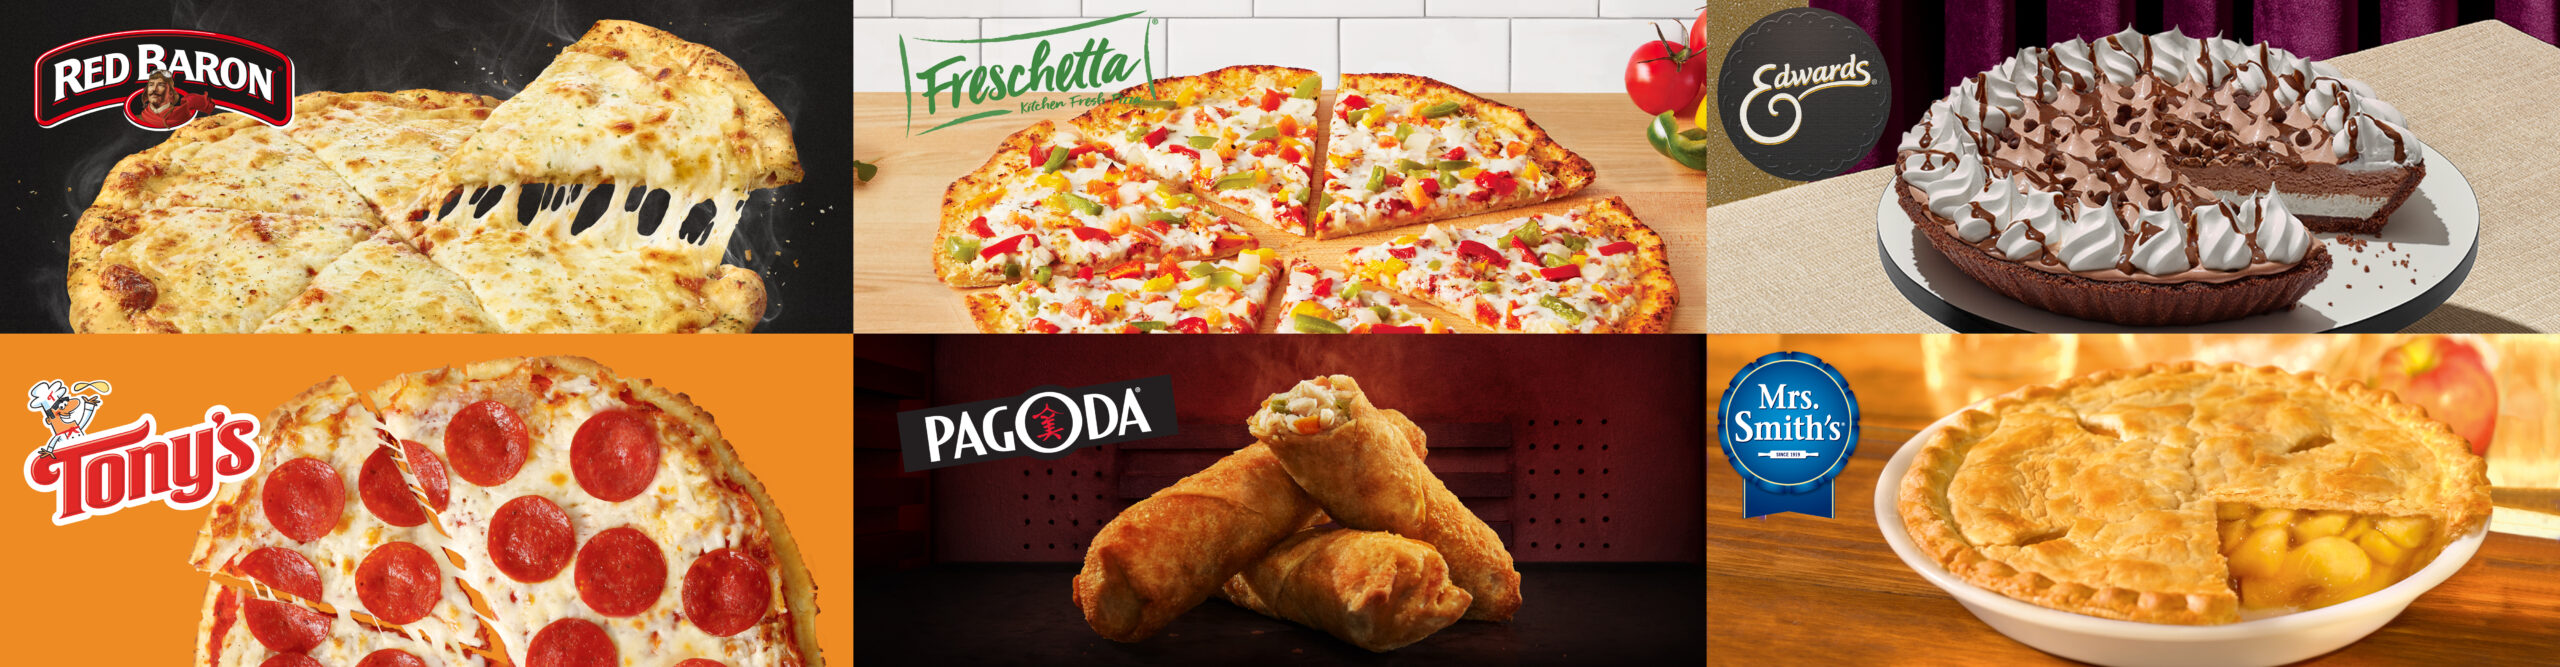 RED BARON® Cheese Brick Oven Pizza, FRESCHETTA® Thin Crust Veggie Pizza, TONY'S® Pepperoni Pizza, PAGODA® Chicken Egg Rolls, EDWARDS® Chocolate Pie and MRS. SMITH'S® Apple Pie